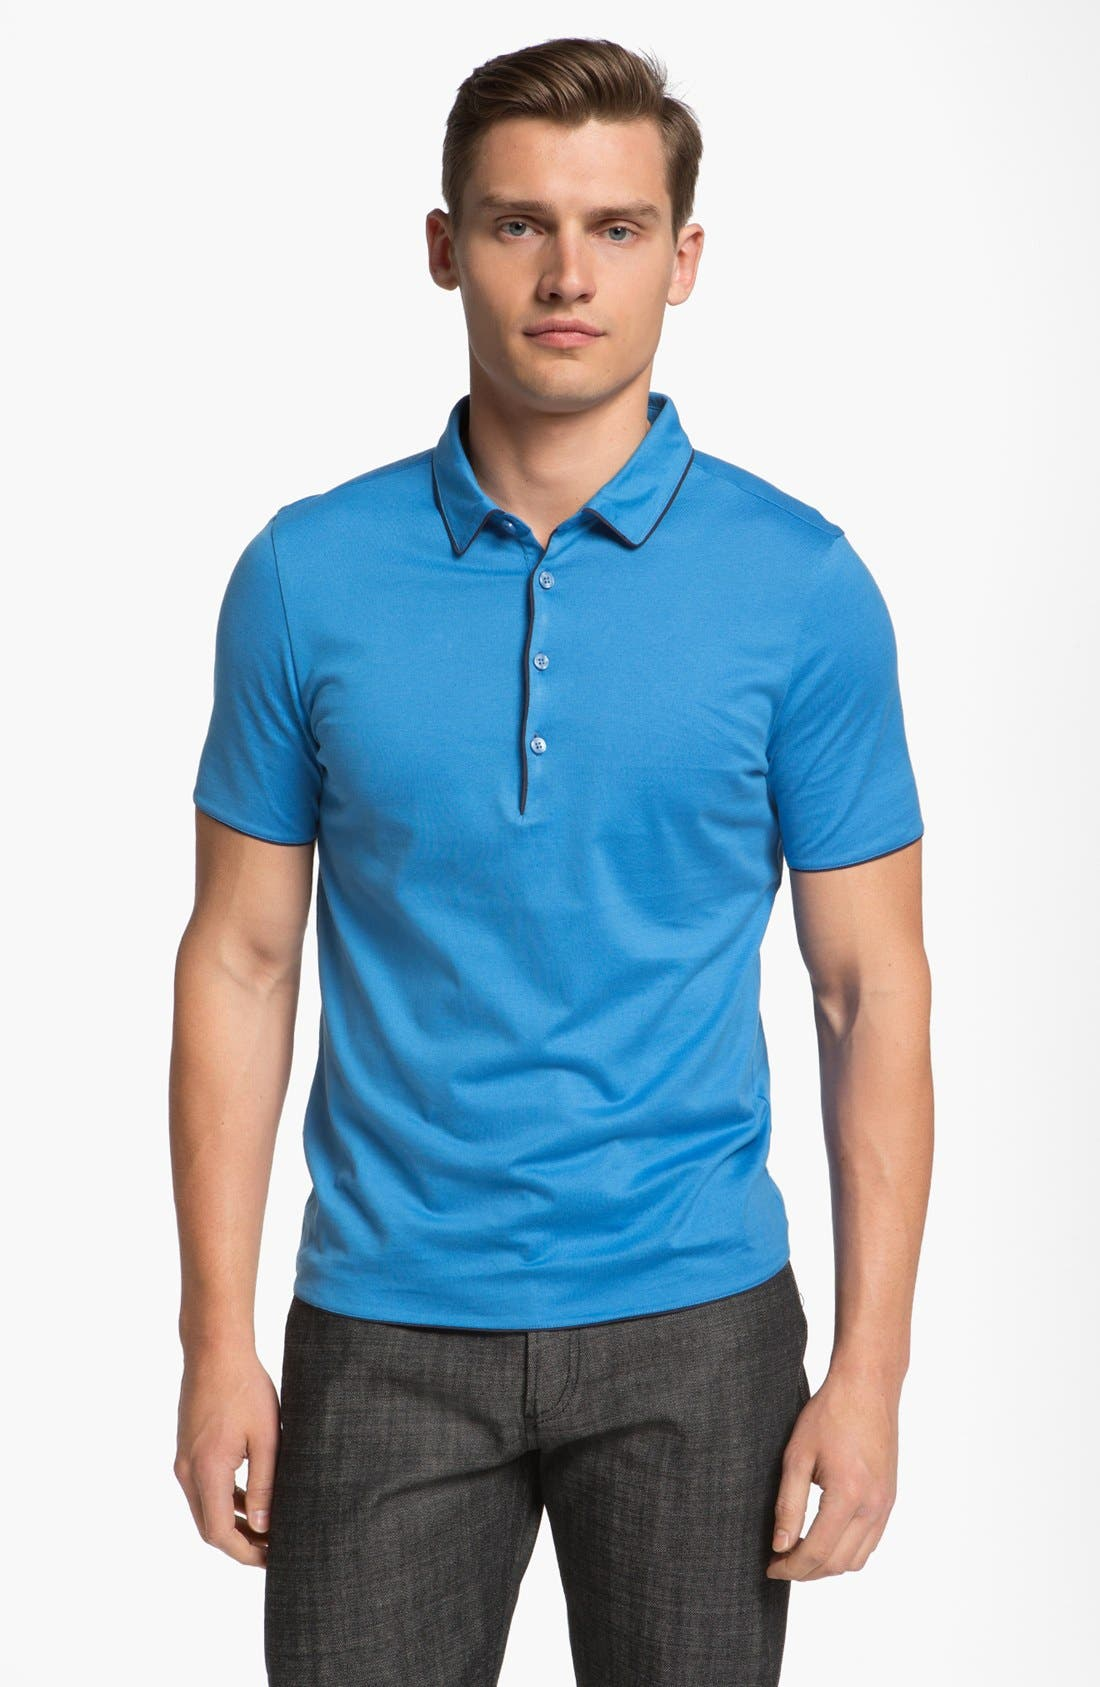 Alternate Image 1 Selected - Z Zegna 'Carbon Finish' Polo